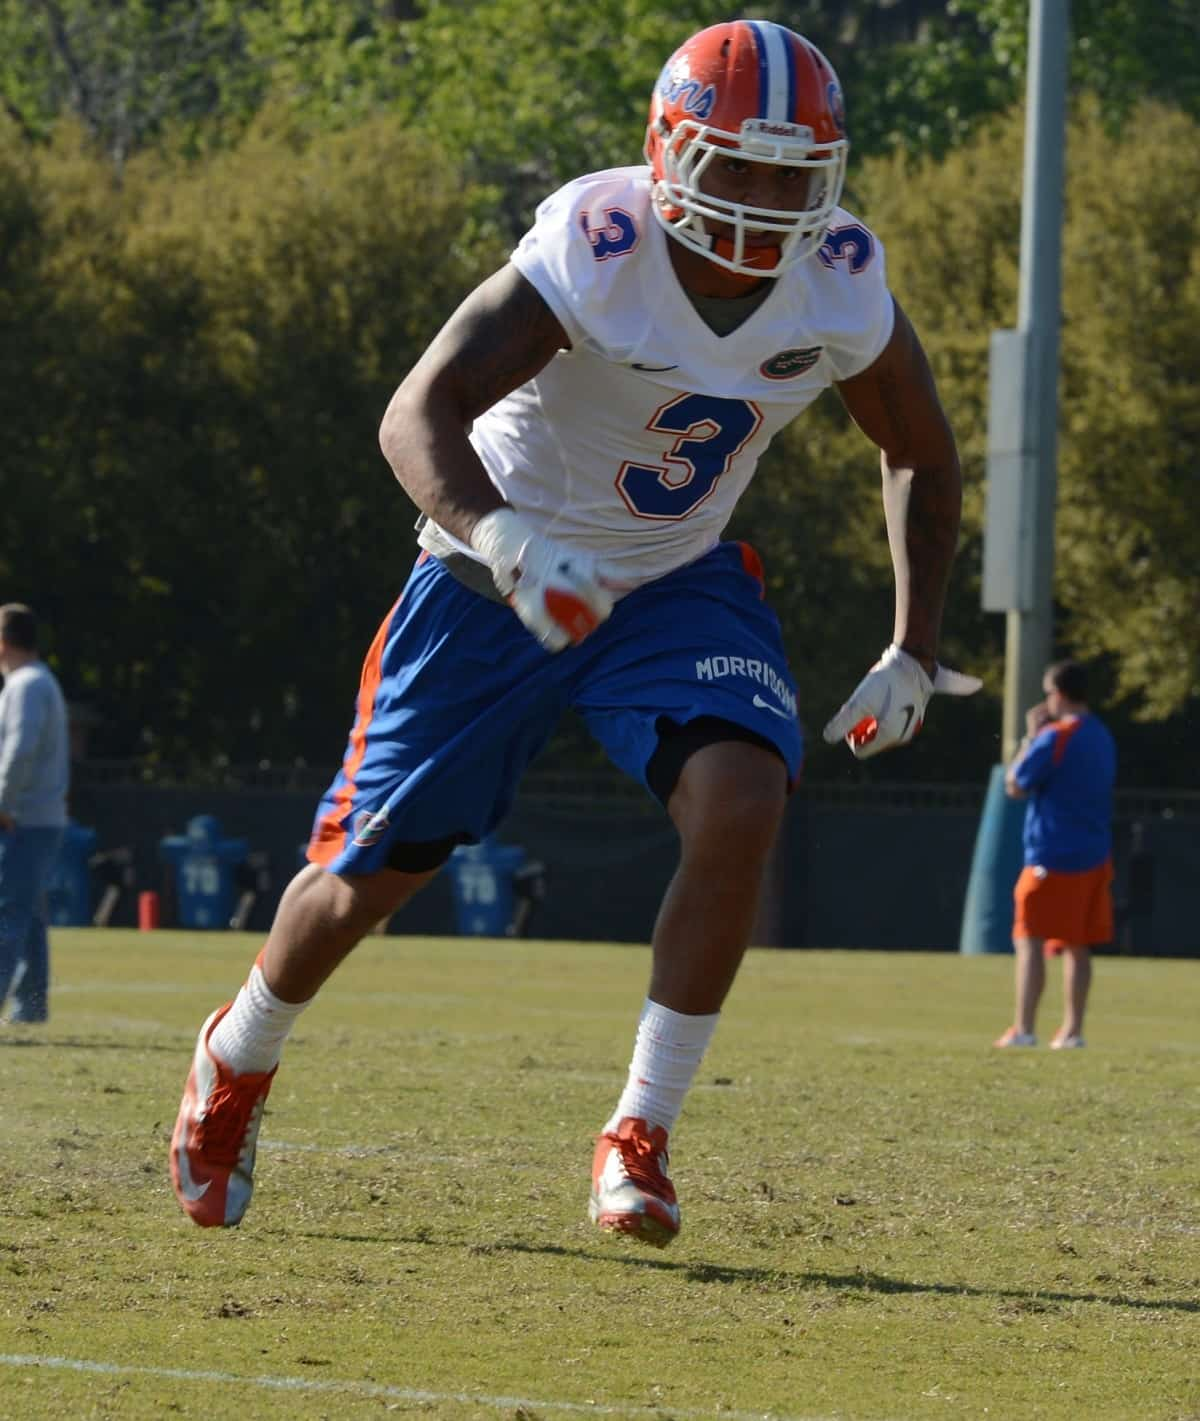 Linebacker Antonio Morrison should be a force in the middle of the Gators' defense this season.